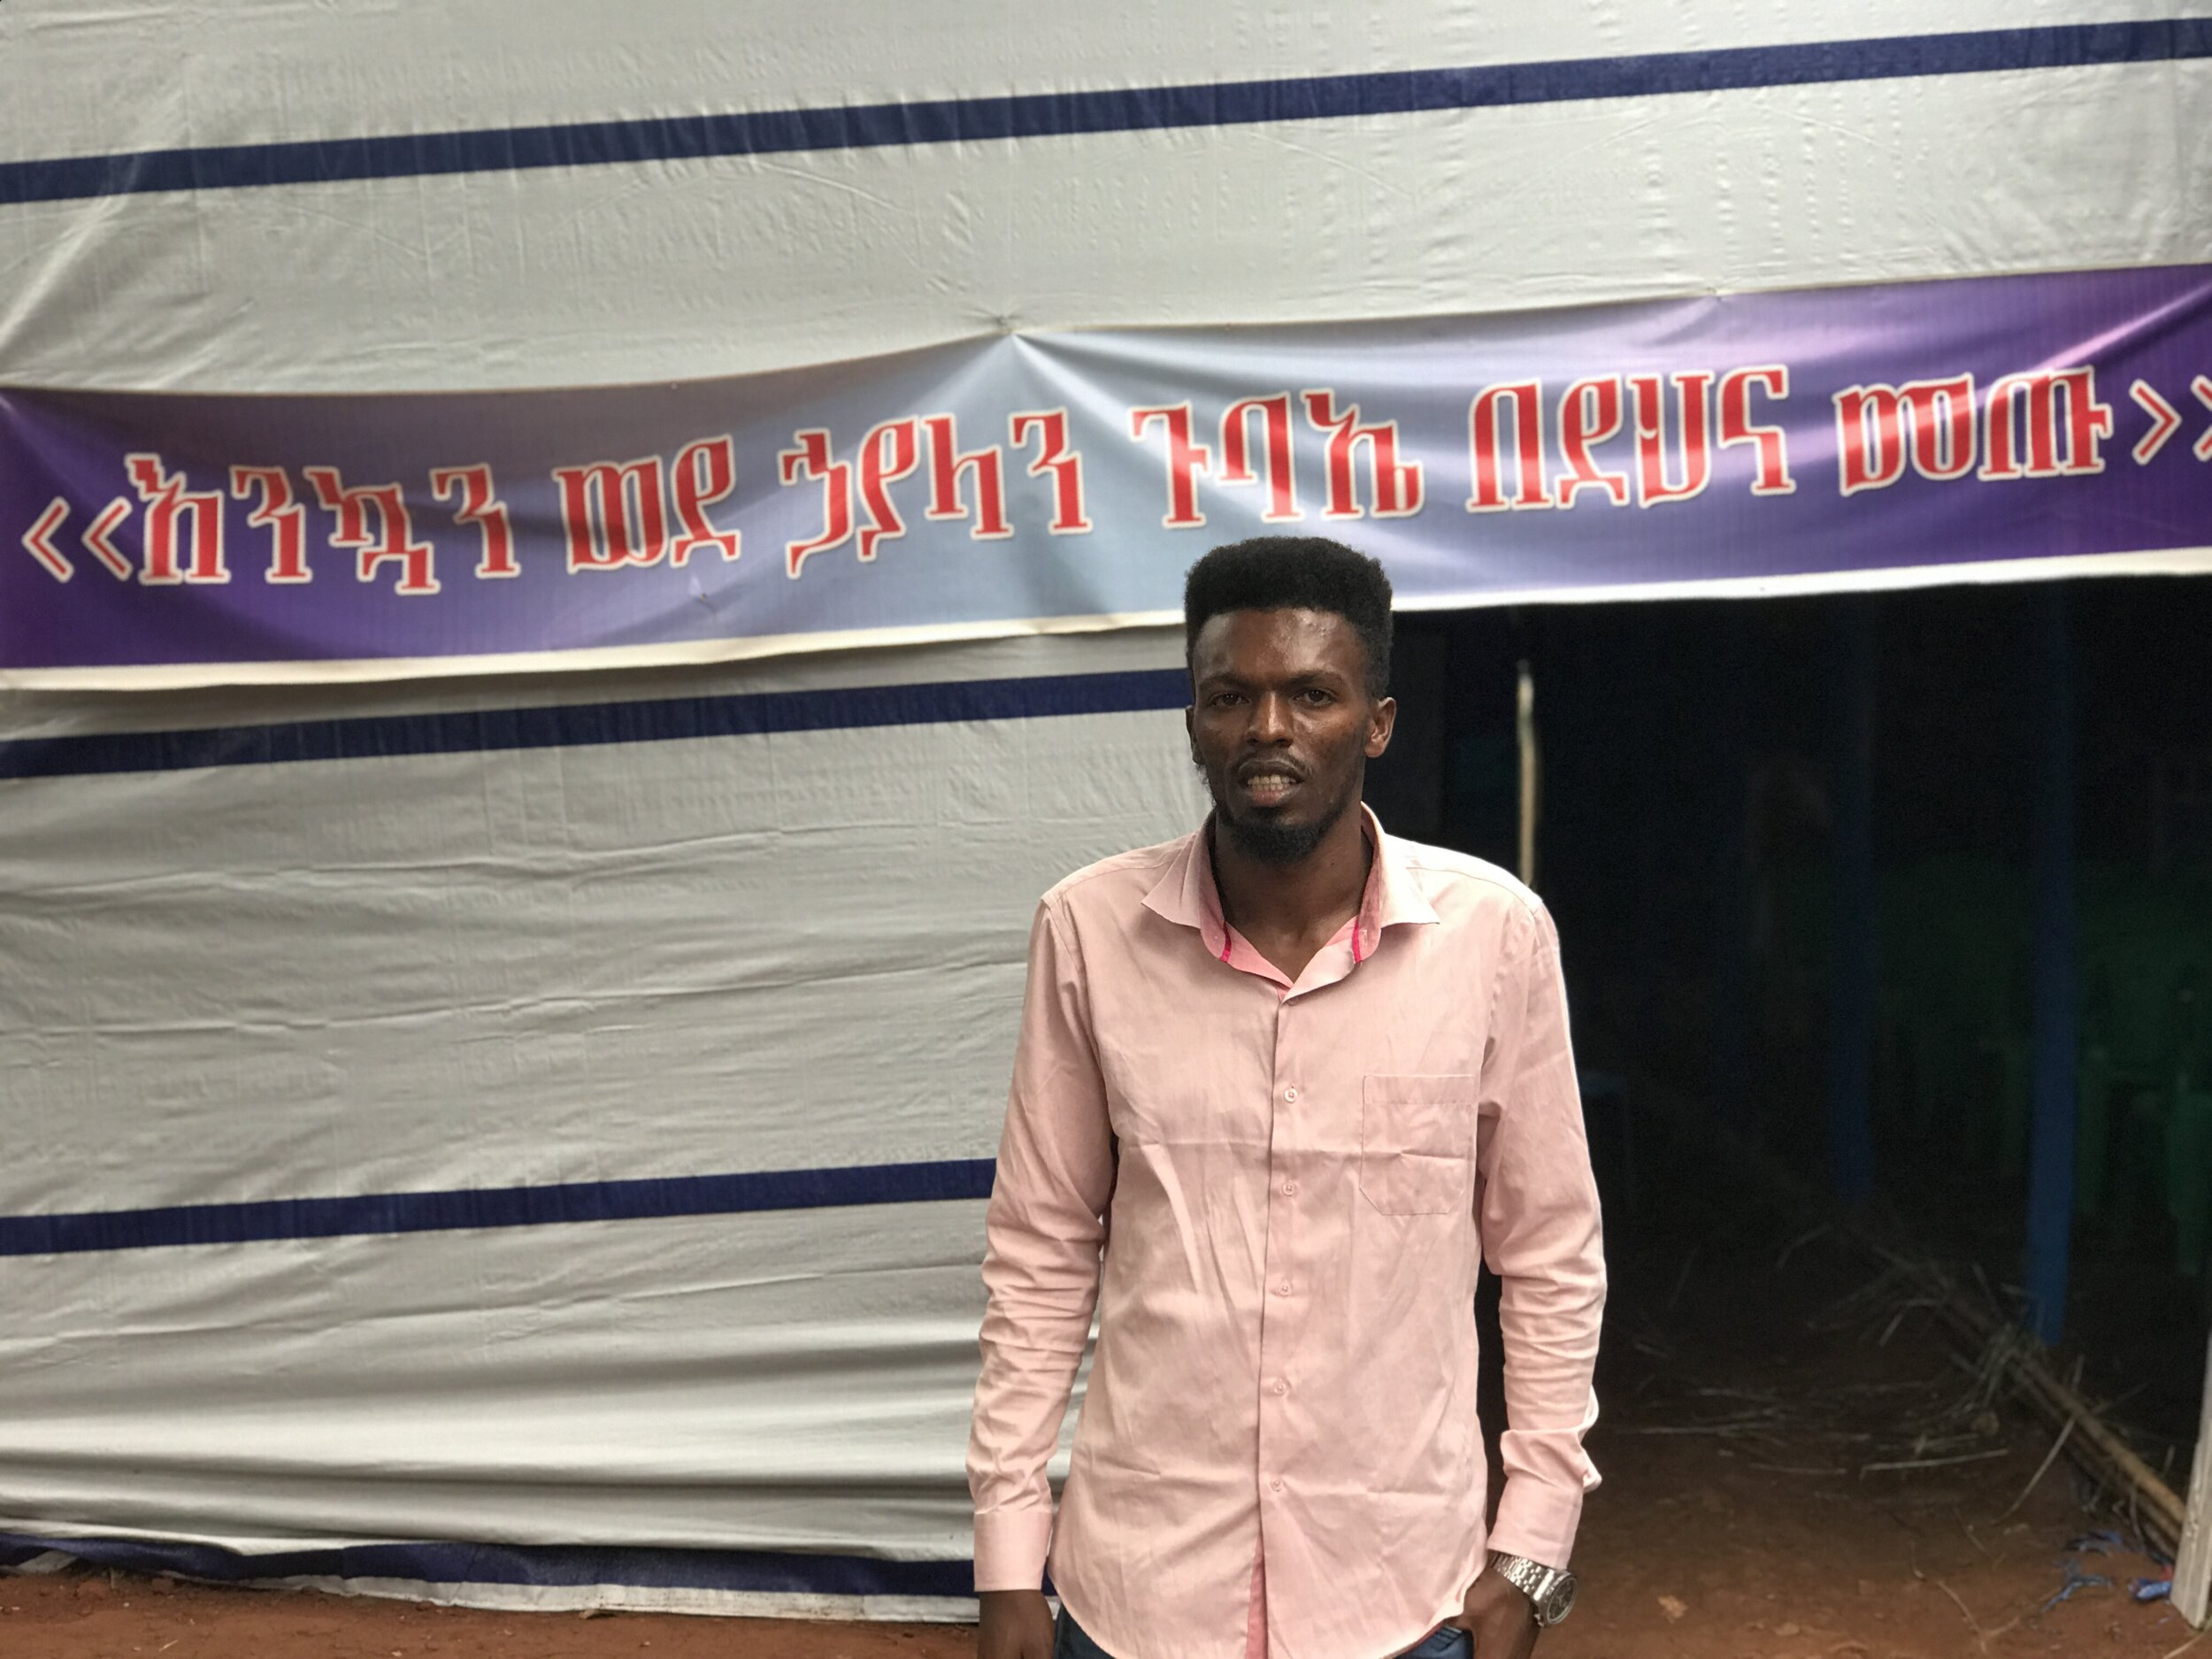 Emmanuel Kalipha - Emanuel was born in Asosa, Ethiopia from the Berta tribe. He grew up in the church, his father is a pastor, and was one of the first Berta people to ever accept Jesus. He has the vision to reach the unengaged unreached Berta people with the Gospel.